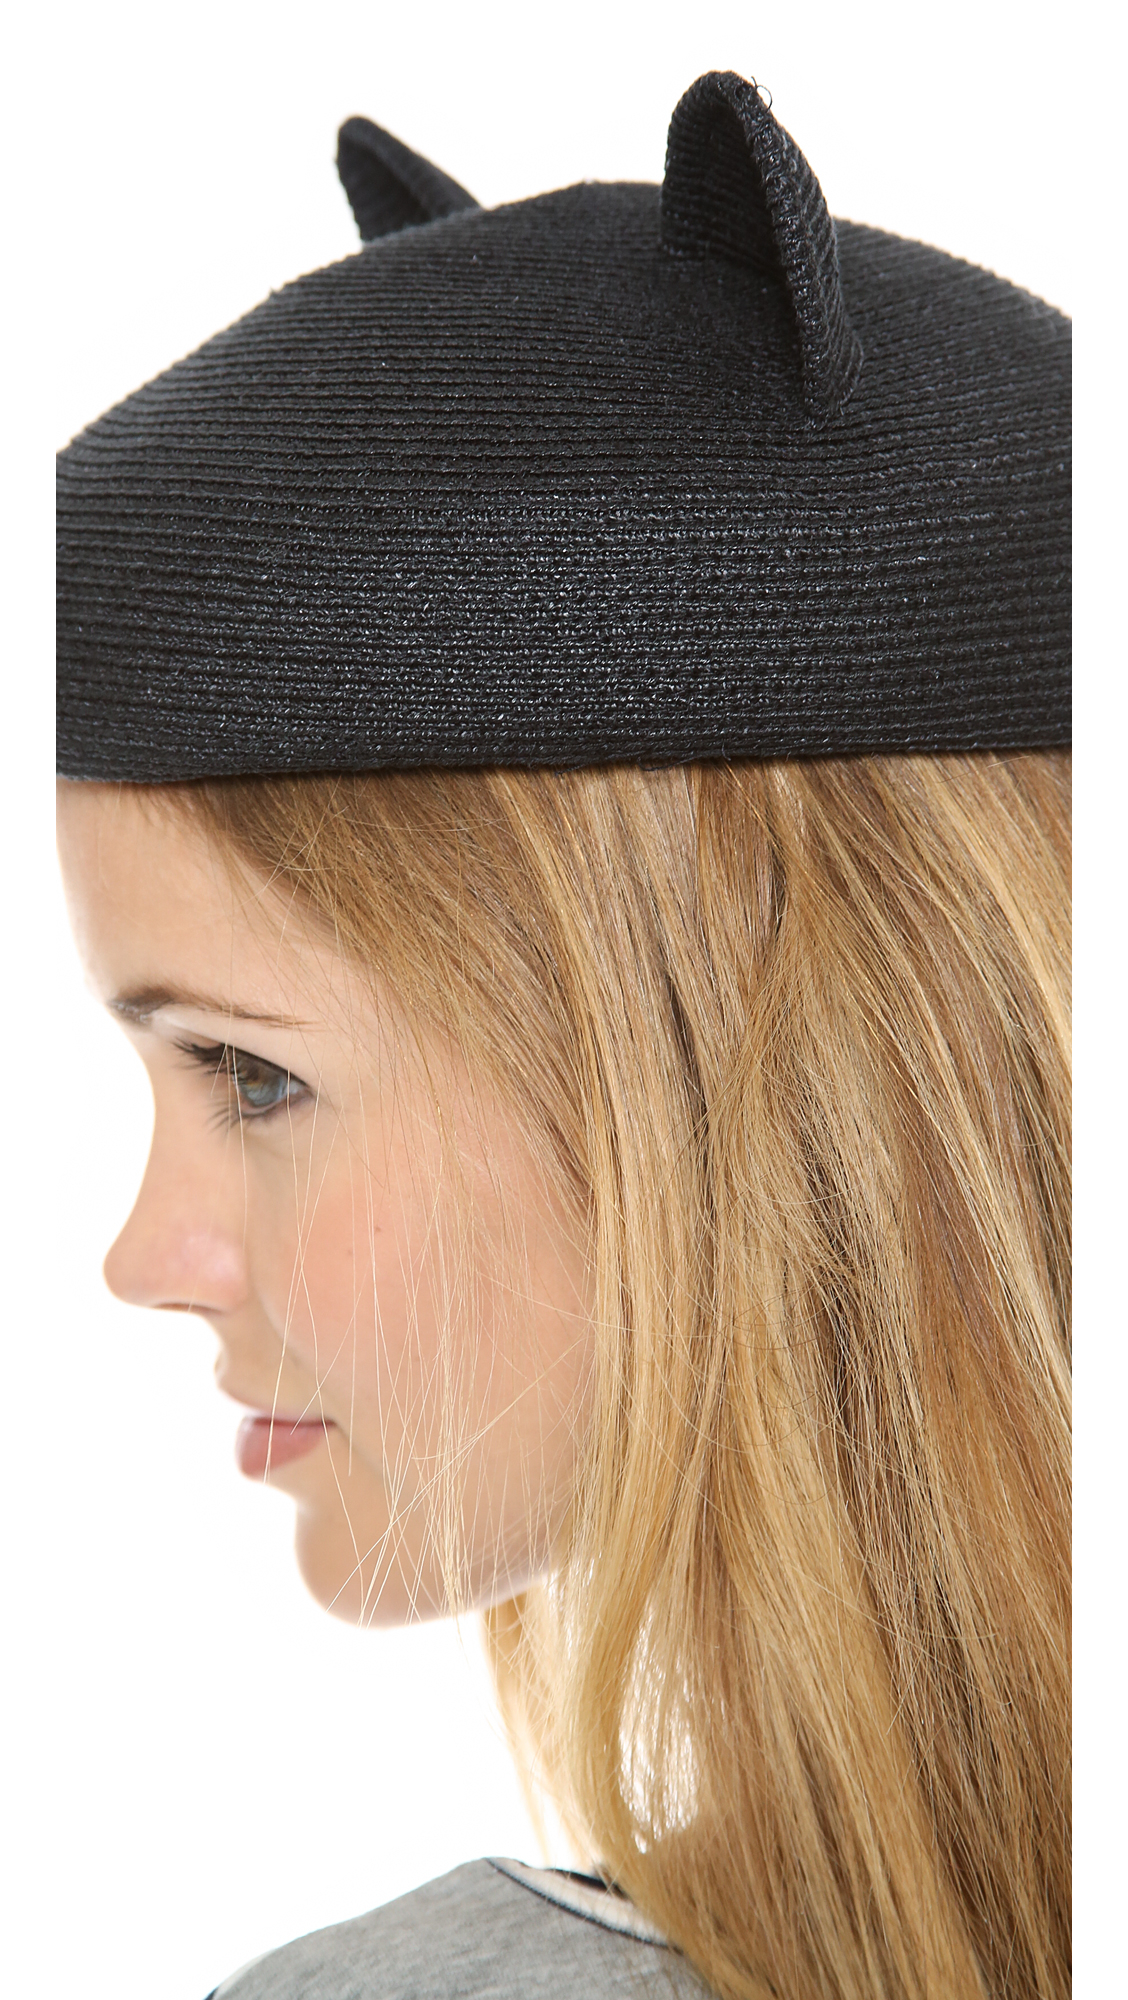 32f5932c653 Eugenia Kim Caterina Hat Black in Black - Lyst